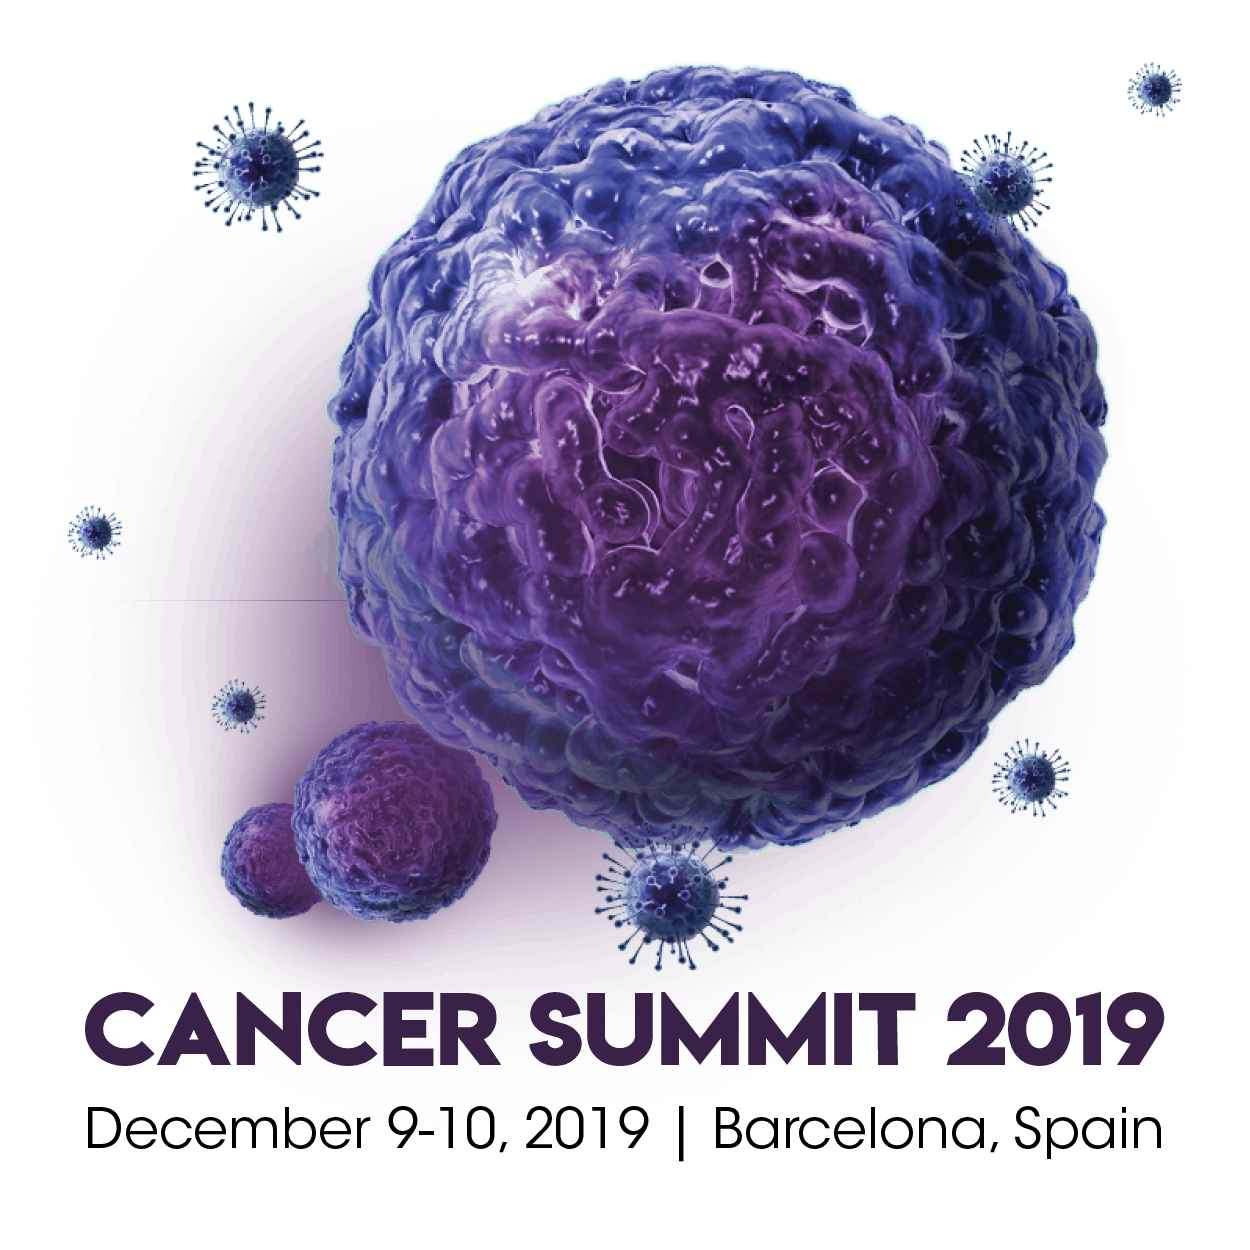 Cancer Conferences | Cancer Summit 2019 | Oncology Conferences